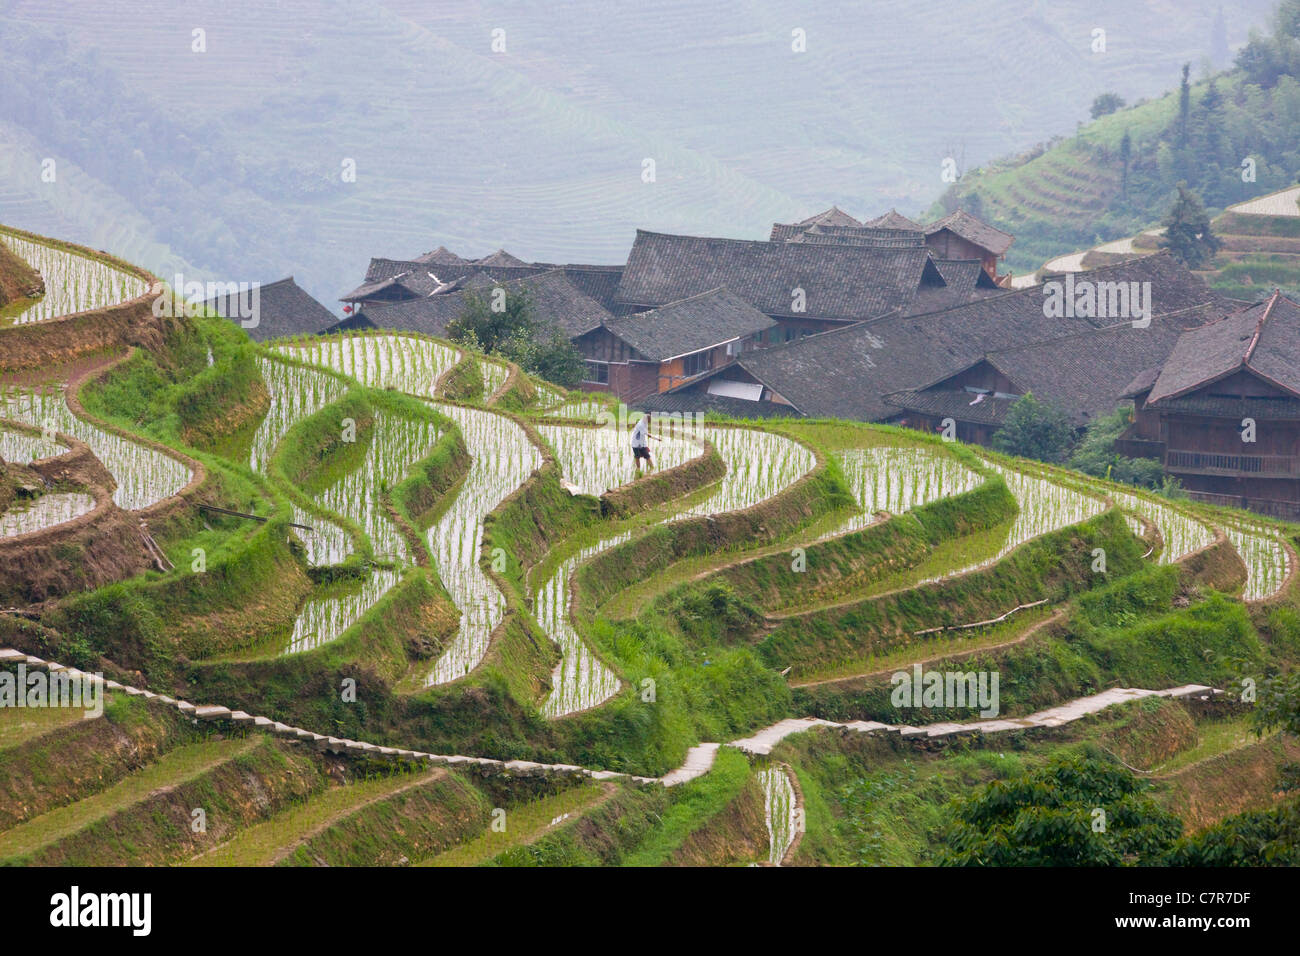 Village houses with rice terraces in the mountain, Longsheng, Guangxi, China - Stock Image